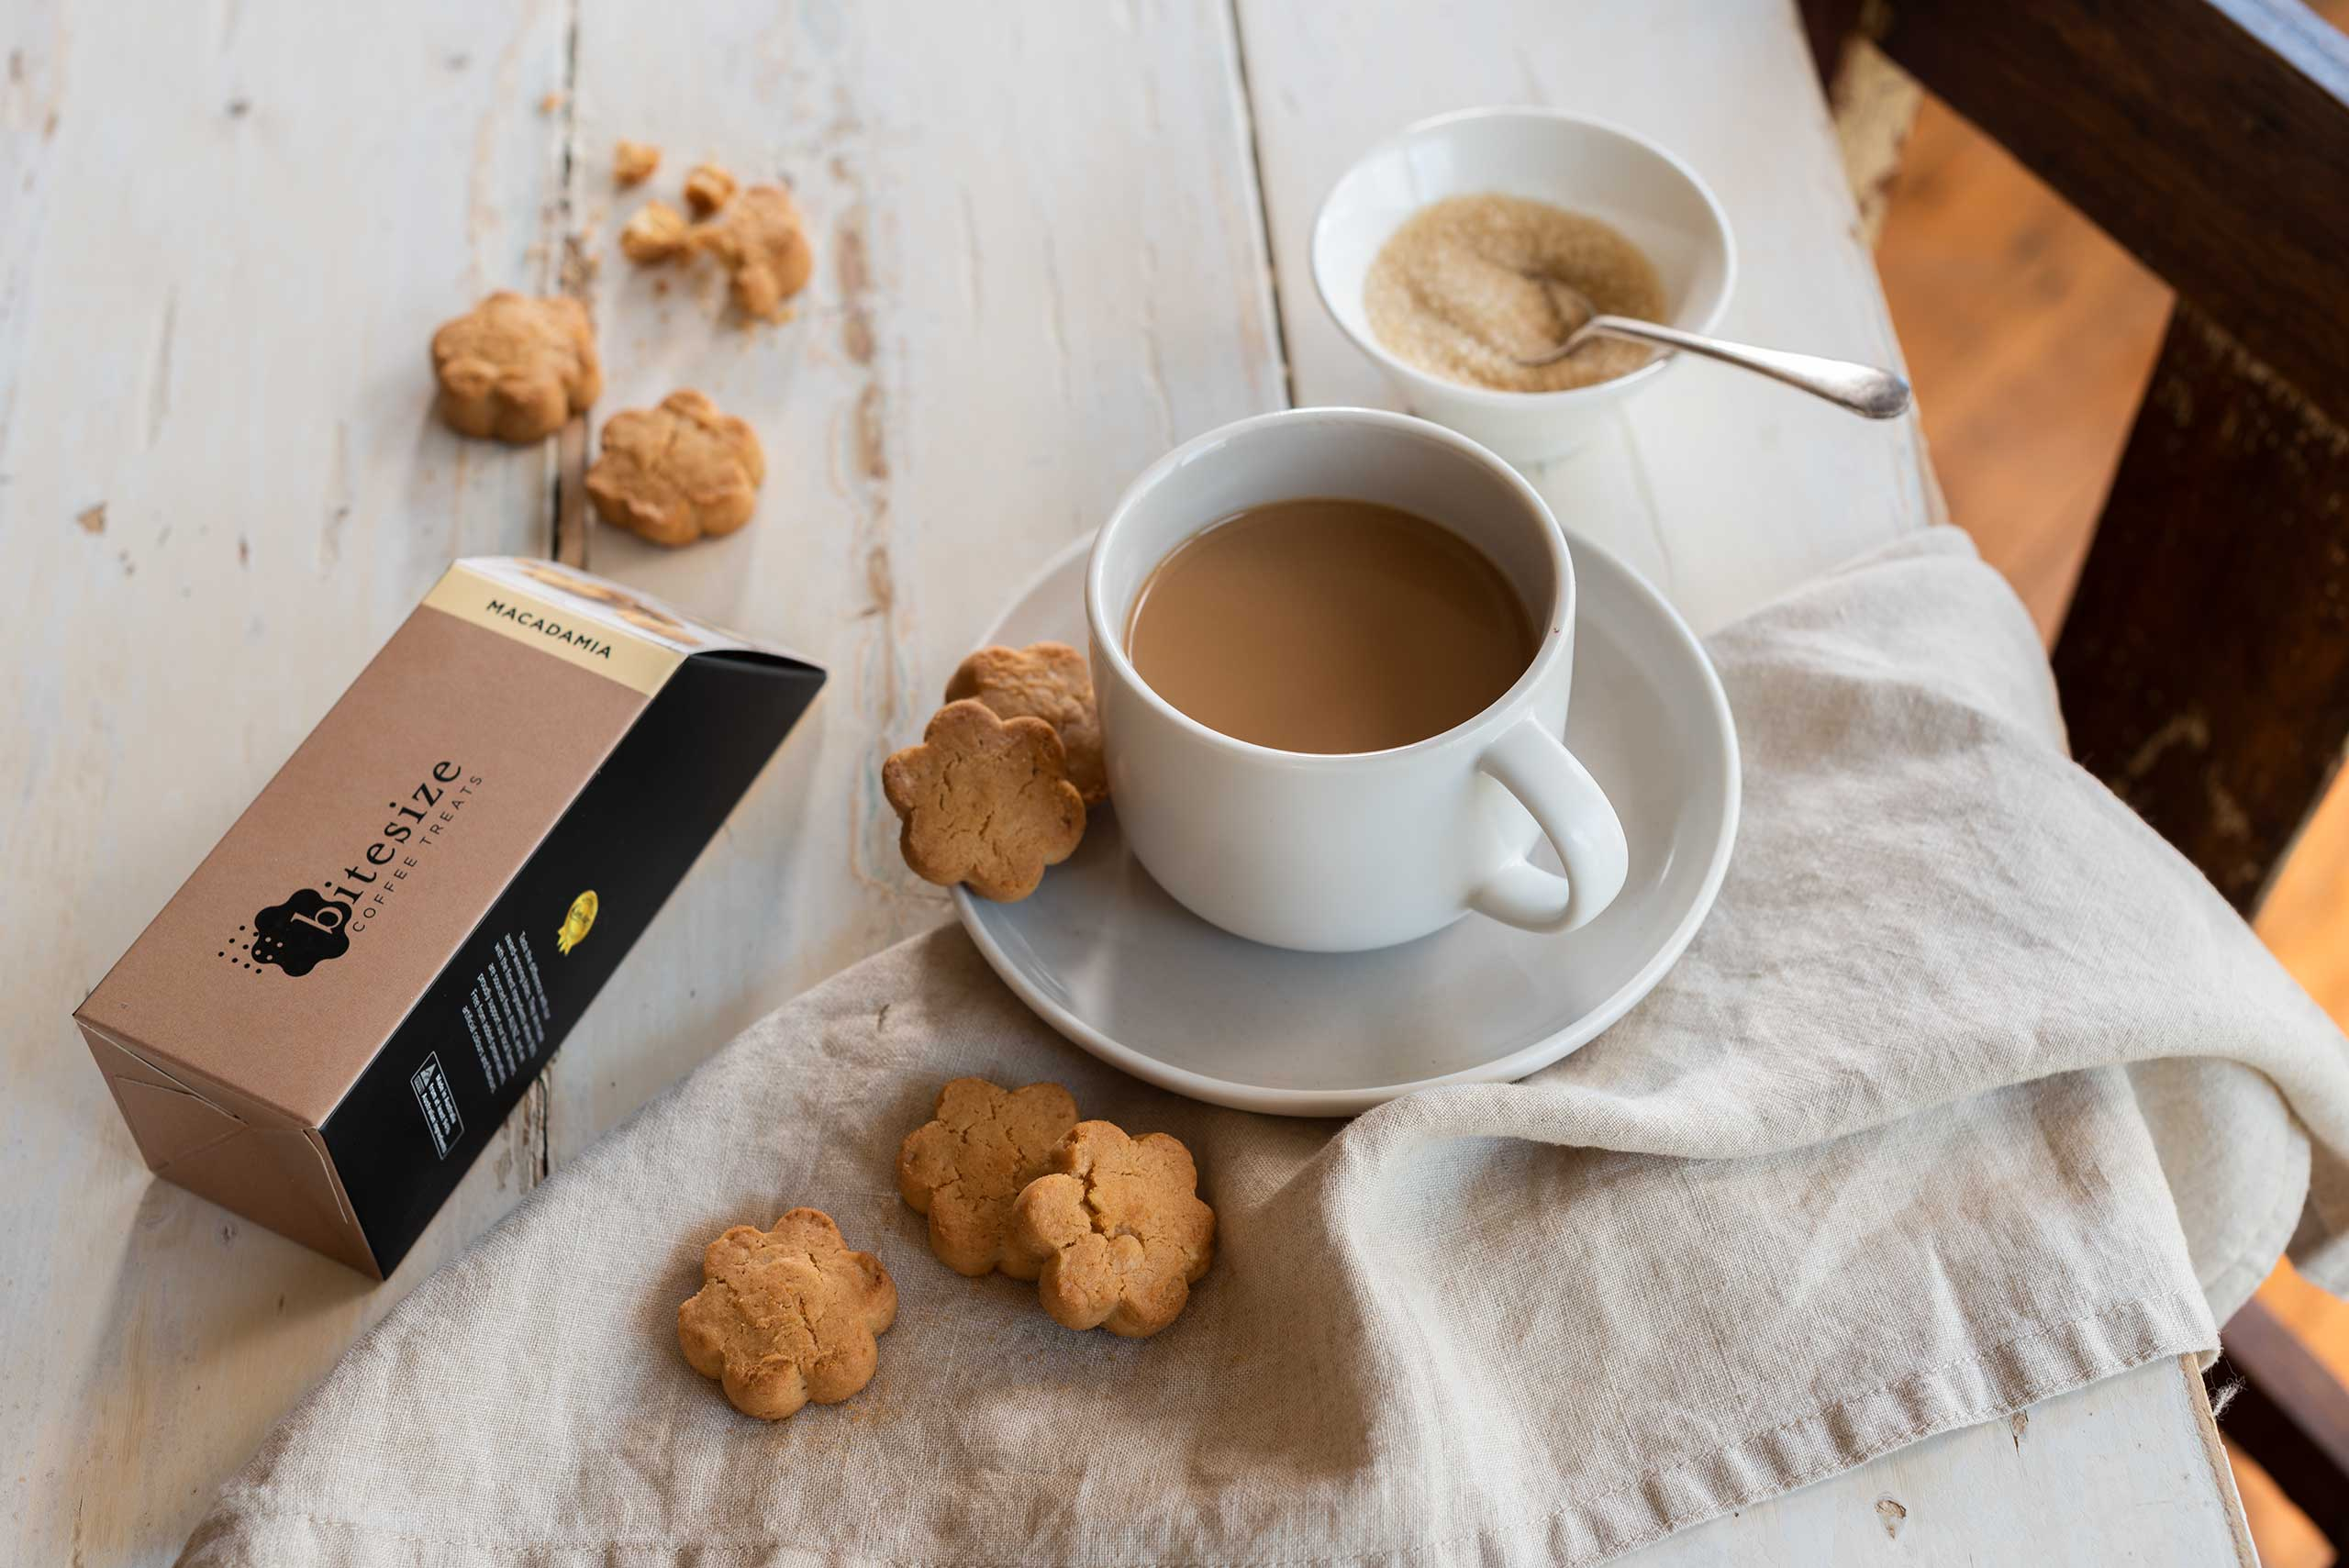 Macadamia bite size biscuit treats, recent lifestyle and product photography